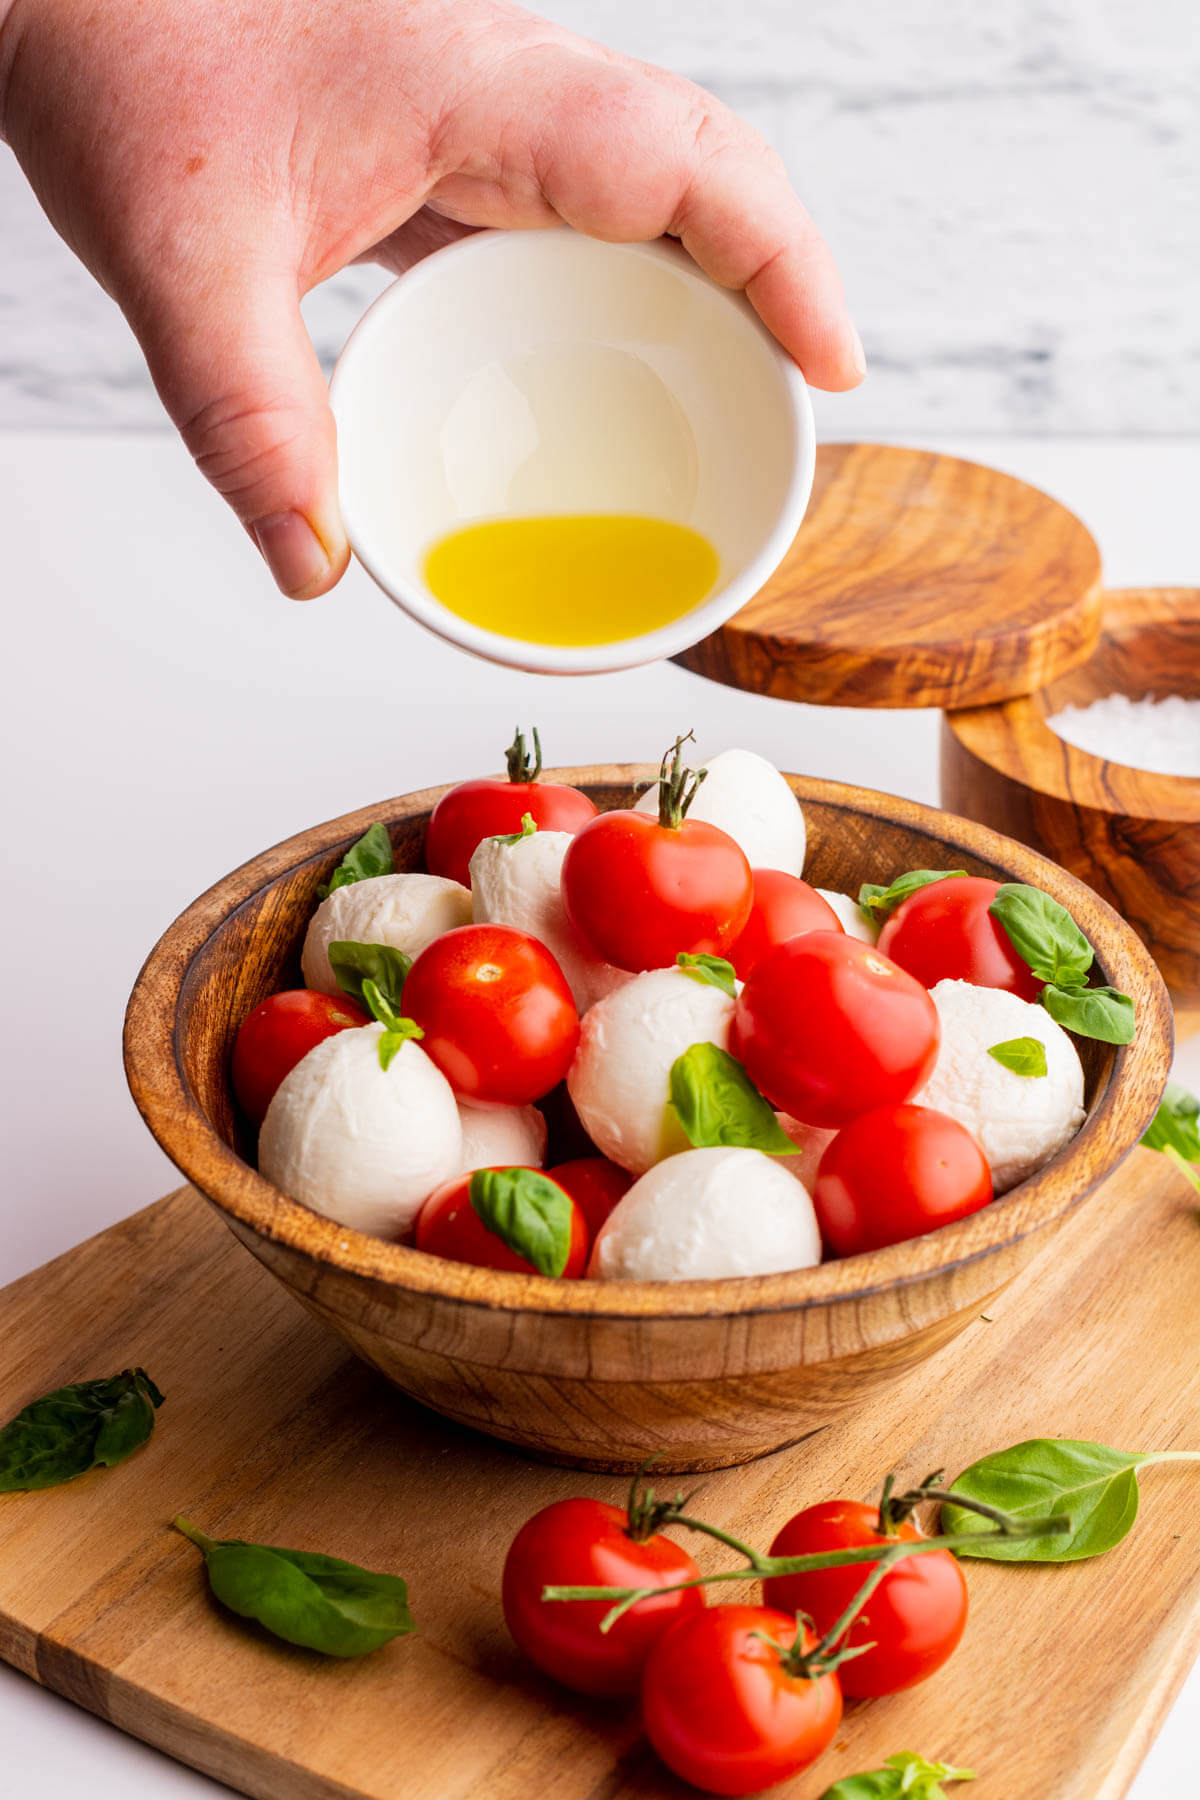 Yellow olive oil being poured over a cherry tomato caprese salad.